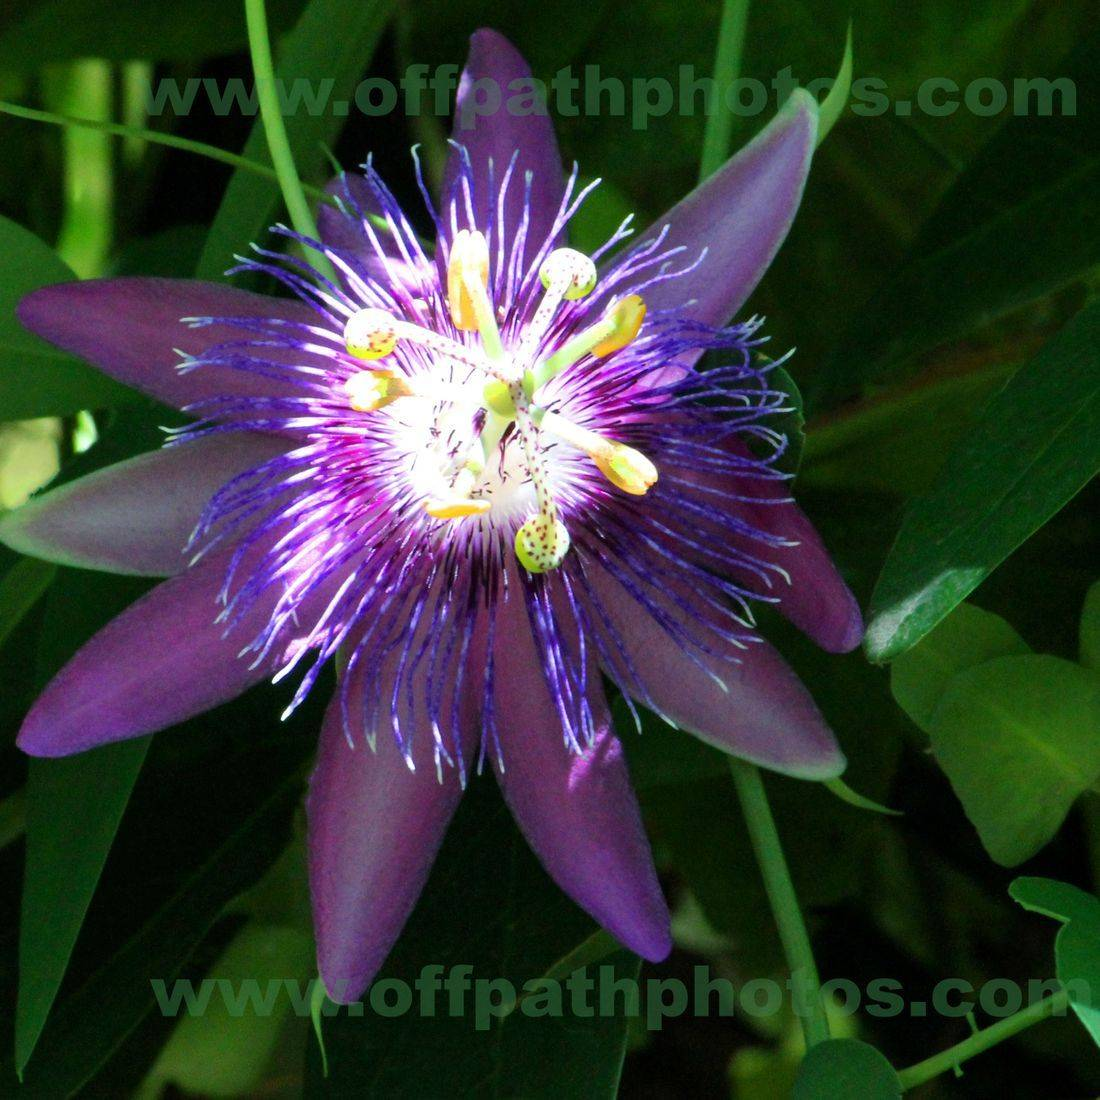 photography, flowers,purple, passion, nature, gardens, beautiful, growing, colorful, sunshine